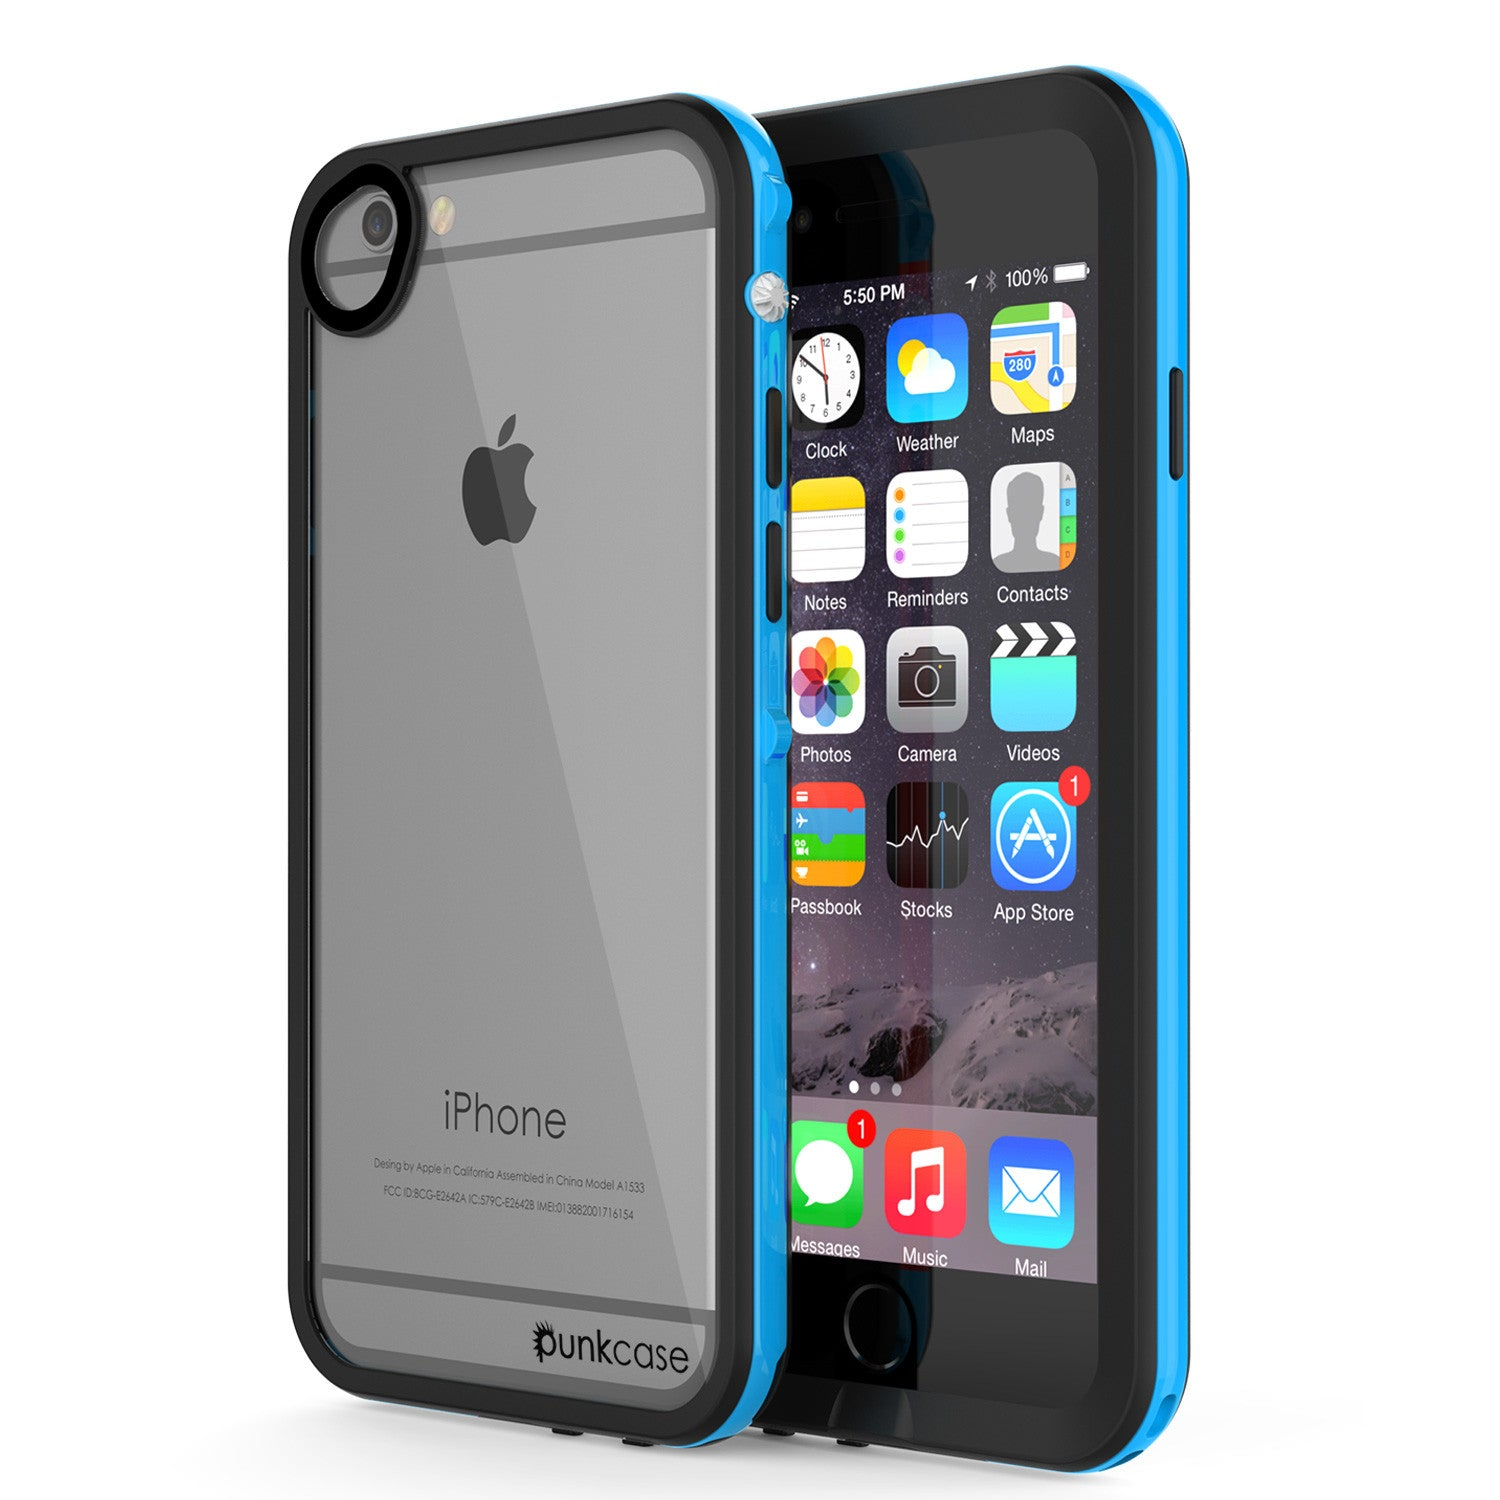 Apple iPhone 7 Waterproof Case, PUNKcase CRYSTAL 2.0 Light Blue  W/ Attached Screen Protector  | Warranty